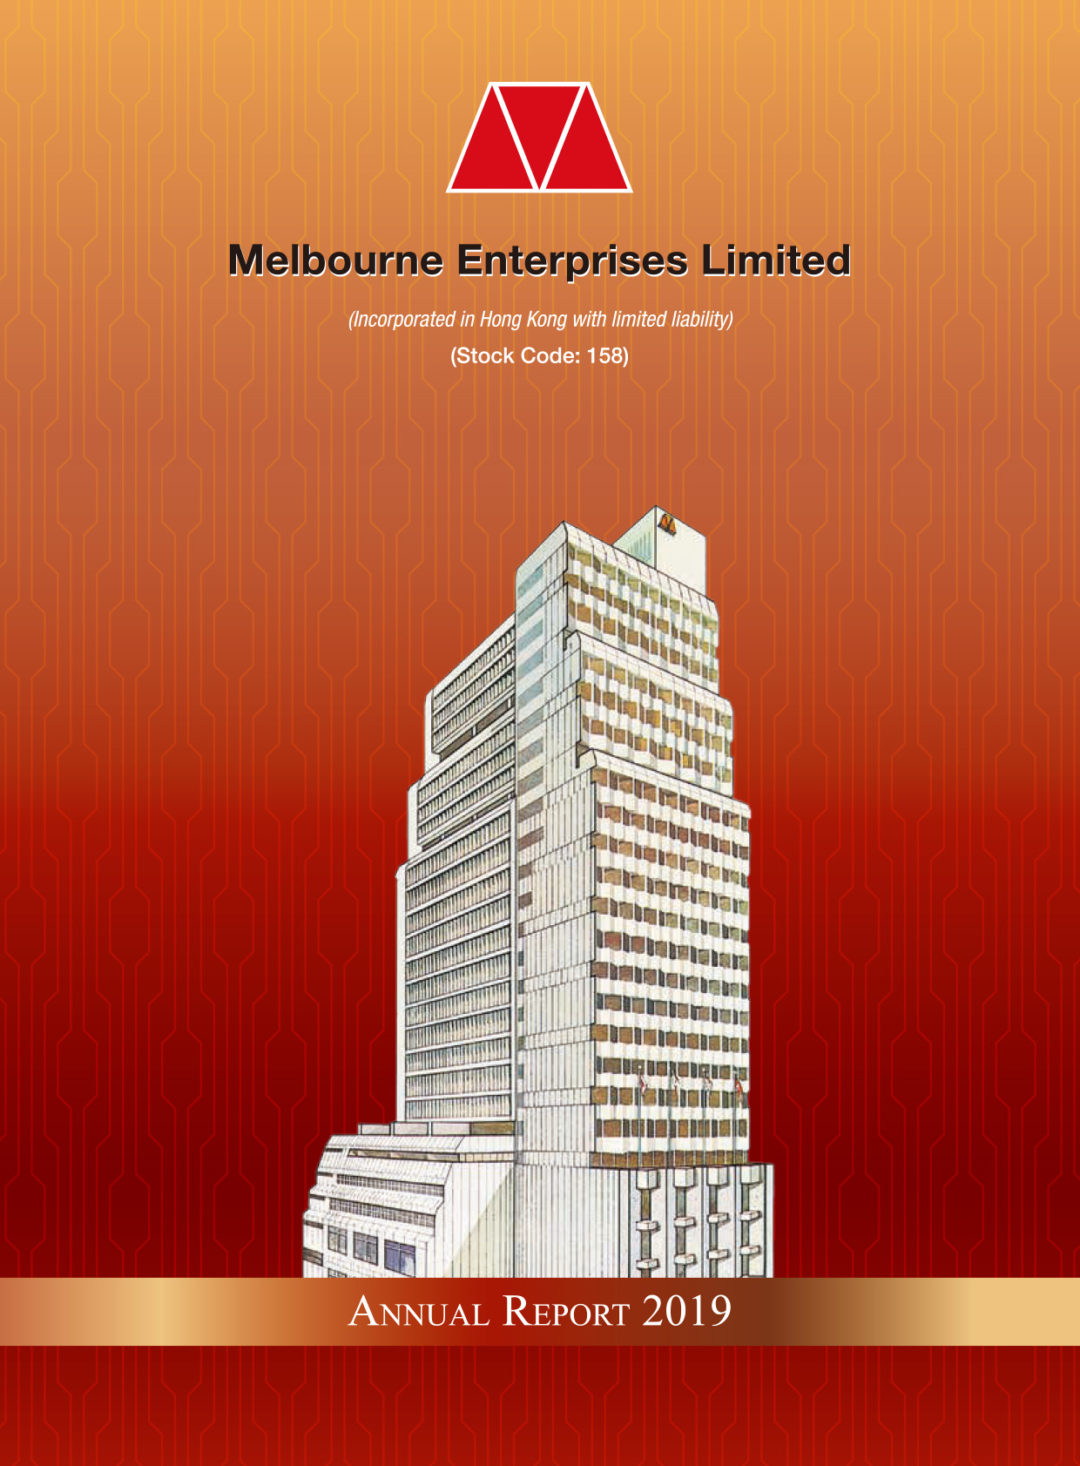 Melbourne Enterprises Limited